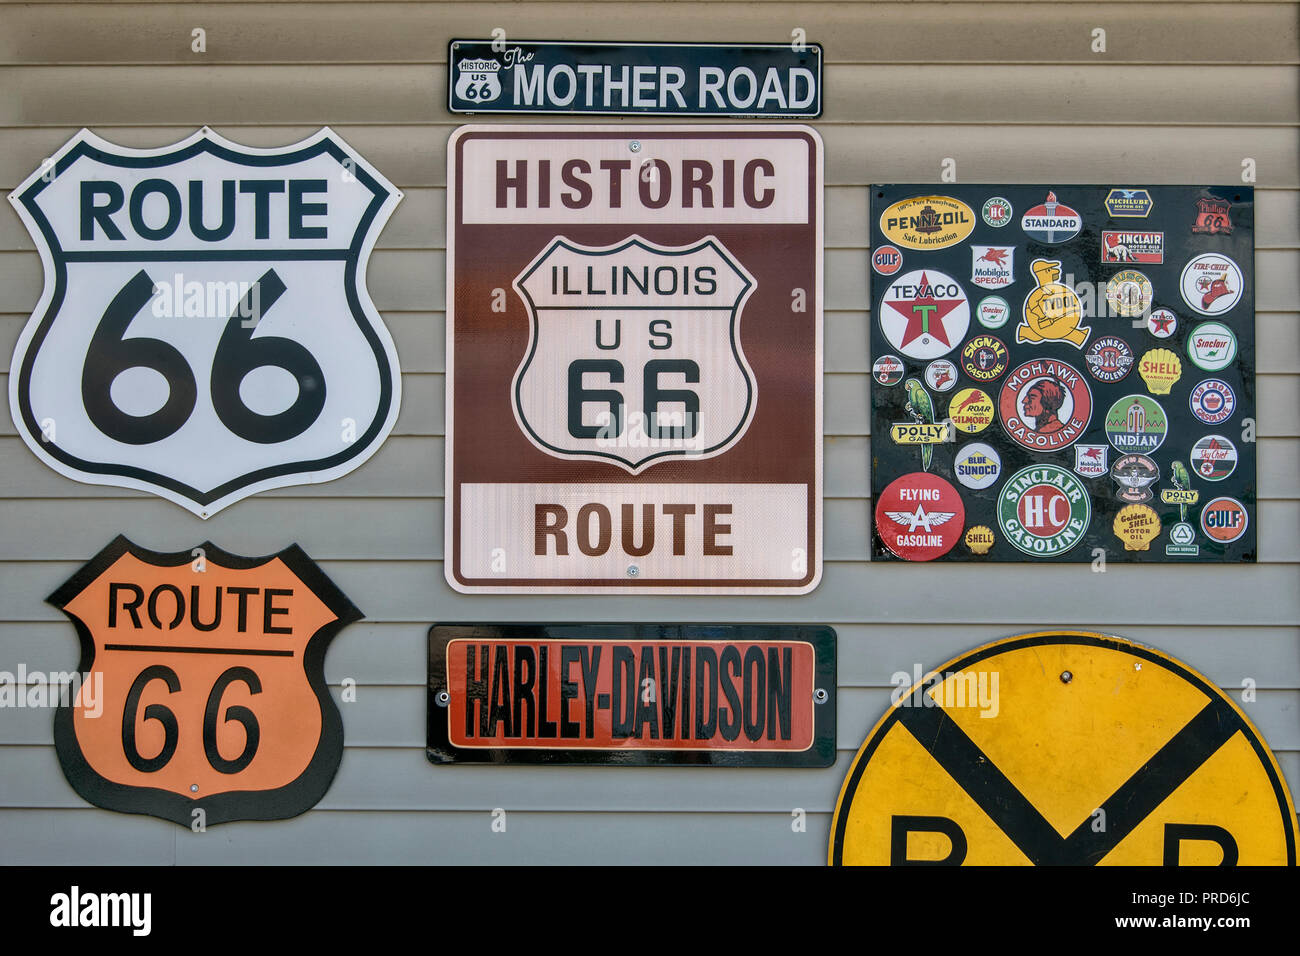 Signs at historic Shea´s Gas Station on Route 66, Springfield, Illinois, USA. Stock Photo